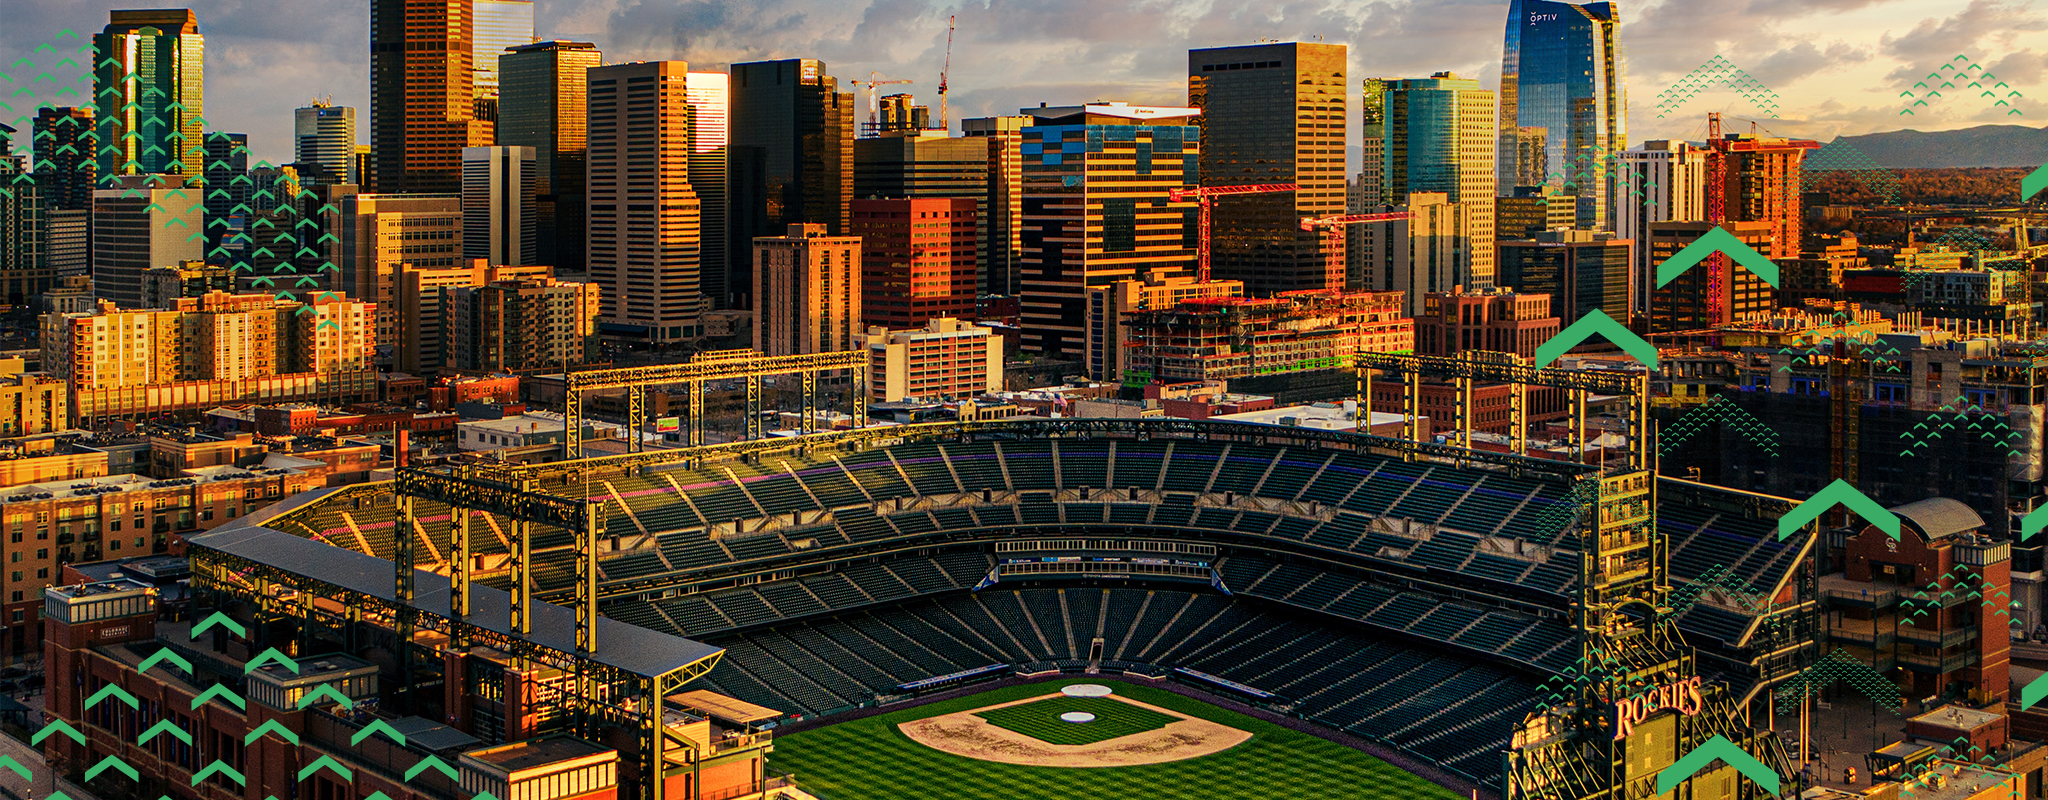 Denver Skyline and Coors Field